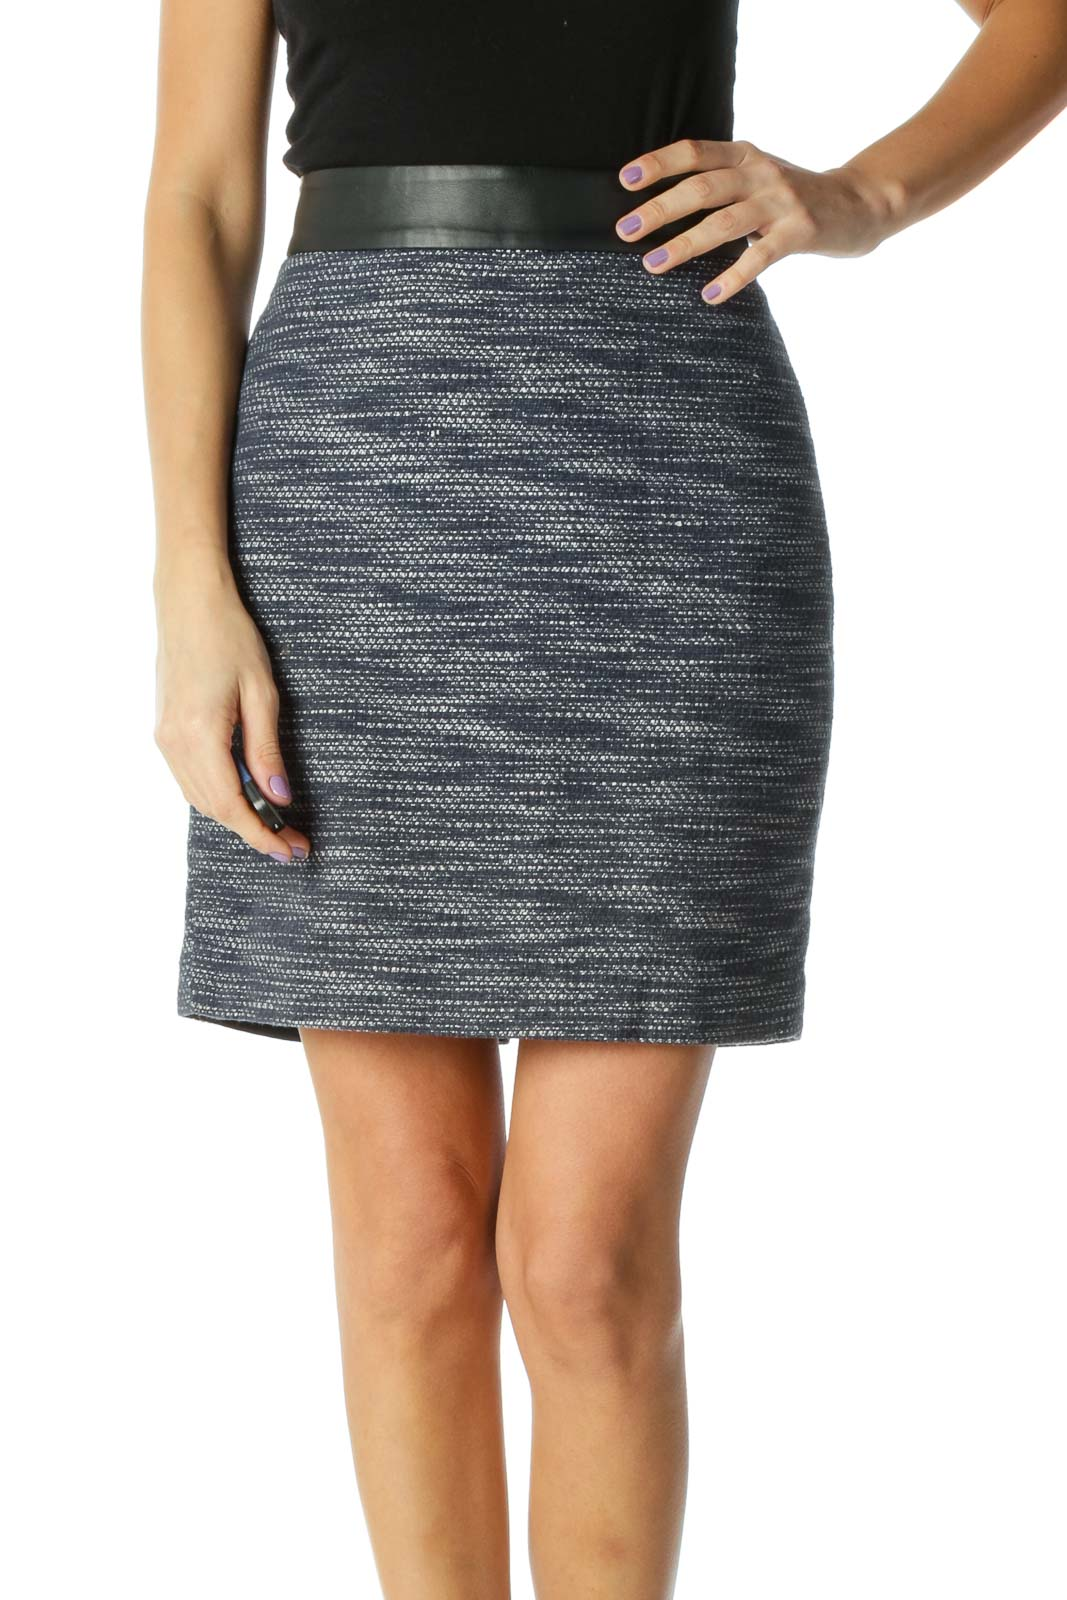 Blue Striped Chic Pencil Skirt